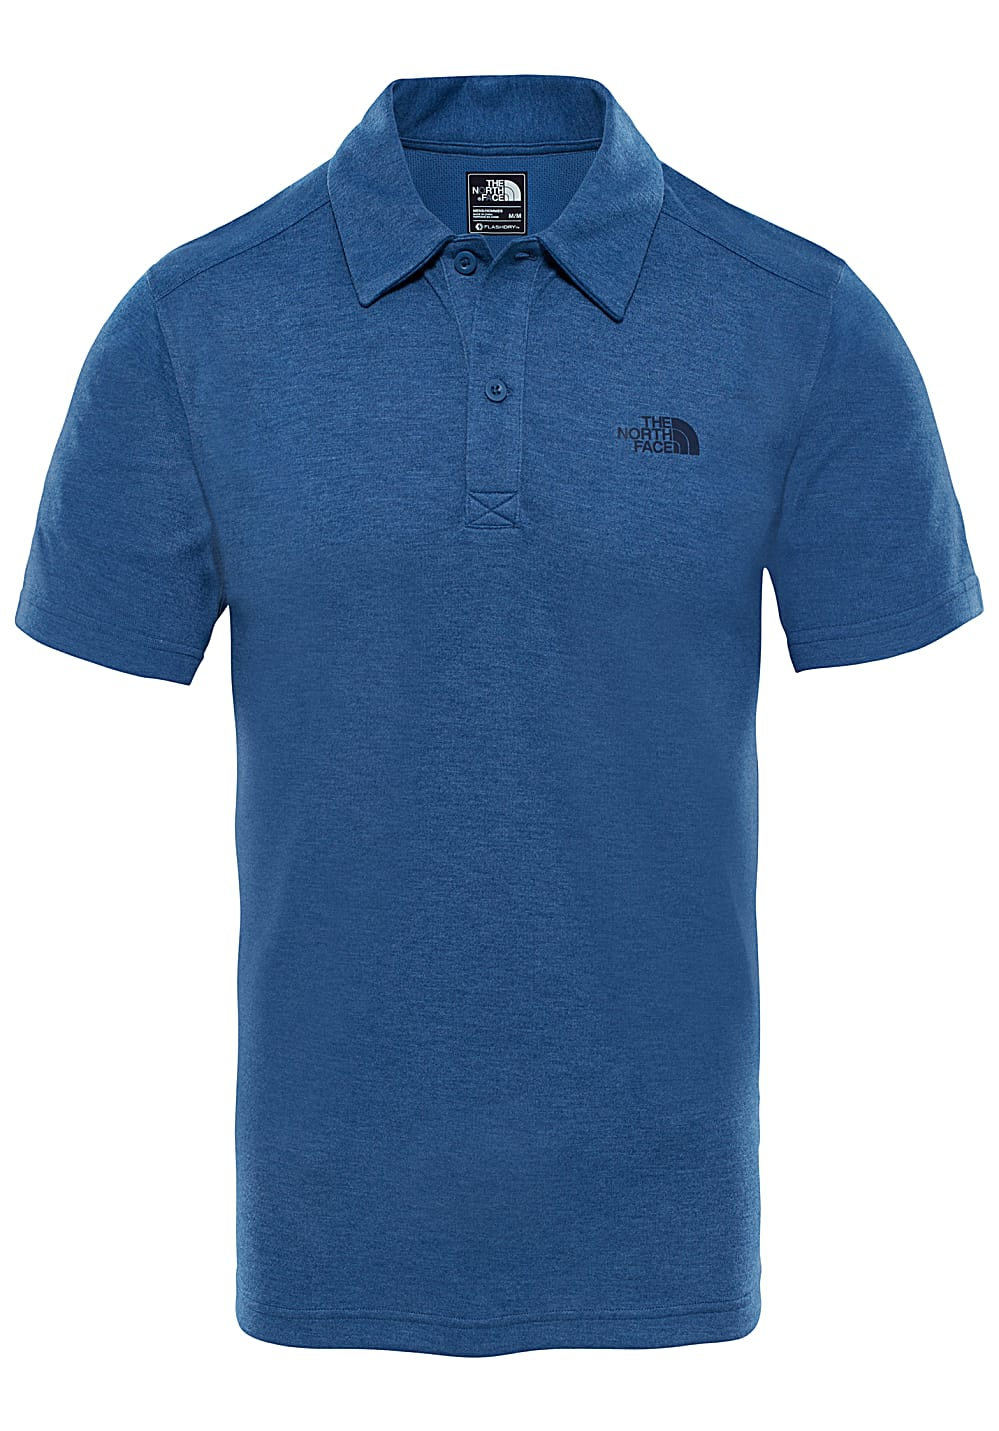 49d47082b THE NORTH FACE Plaited Crag - Polo Shirt for Men - Blue - Planet Sports